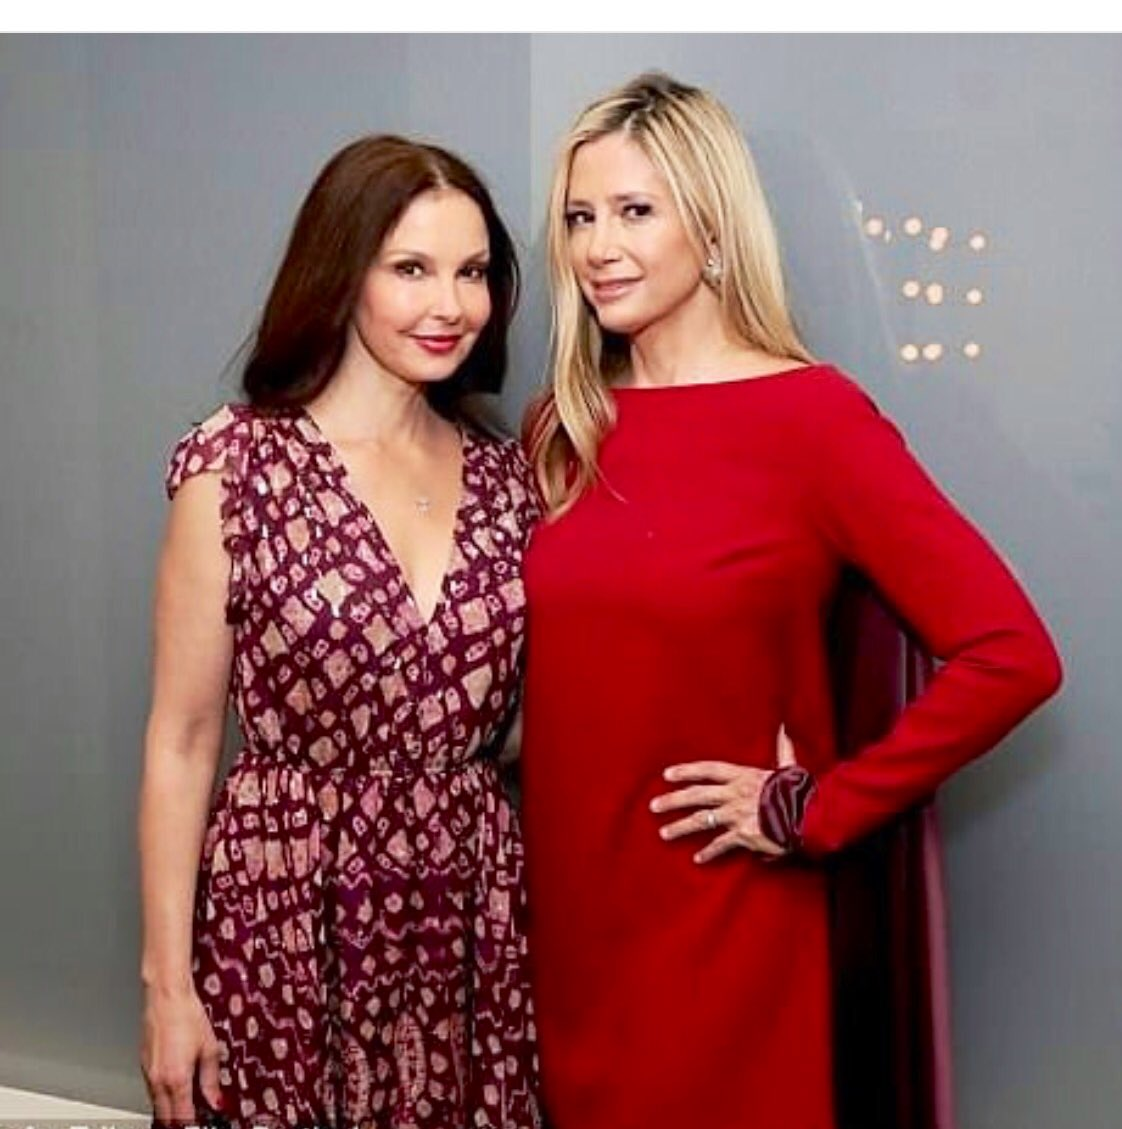 👀Also, I'm just gonna point this out seeing as no one else has: @MiraSorvino's sporting a killer red frock THAT COMES WITH... A CAPE? #Shero #Literally ❤️ Thank you 🙏 @LiliBernard @_jessicabarth_  @RoArquette @TaranaBurke @AshleyJudd @GretchenCarlson @caitlindulany @reesegomes